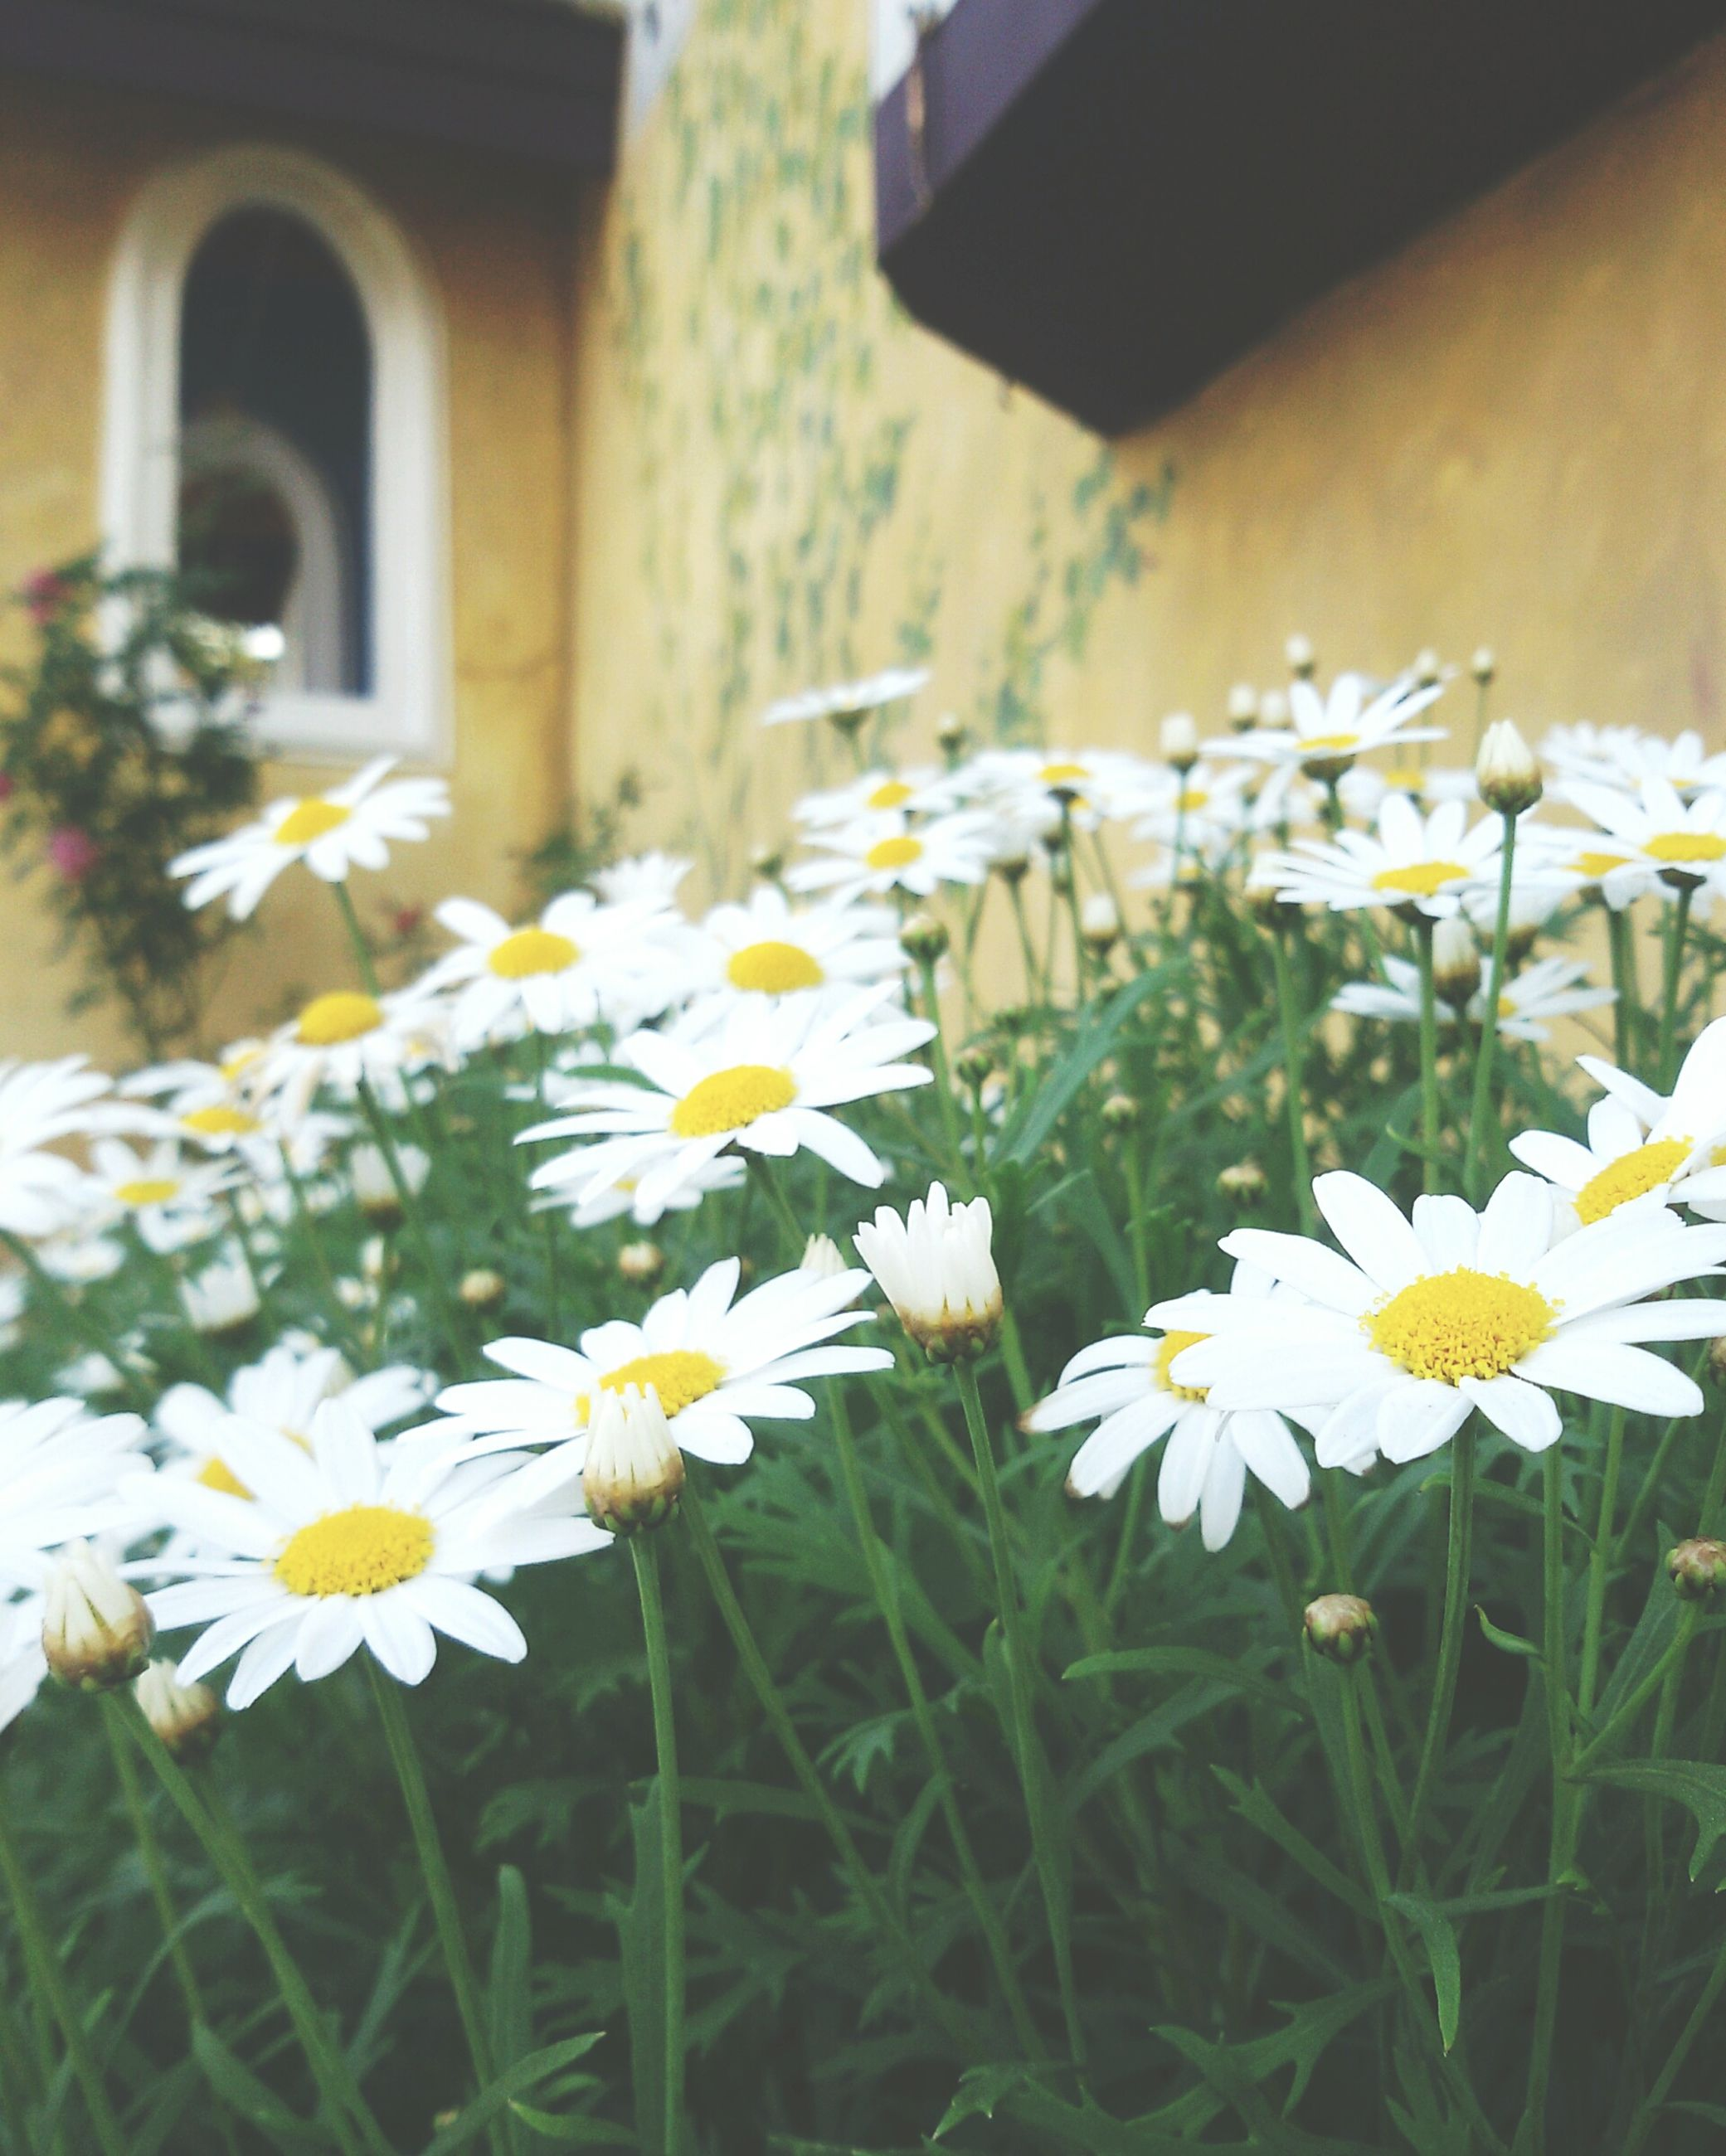 flower, freshness, fragility, petal, growth, white color, flower head, blooming, beauty in nature, focus on foreground, plant, nature, daisy, in bloom, close-up, building exterior, built structure, stem, selective focus, field